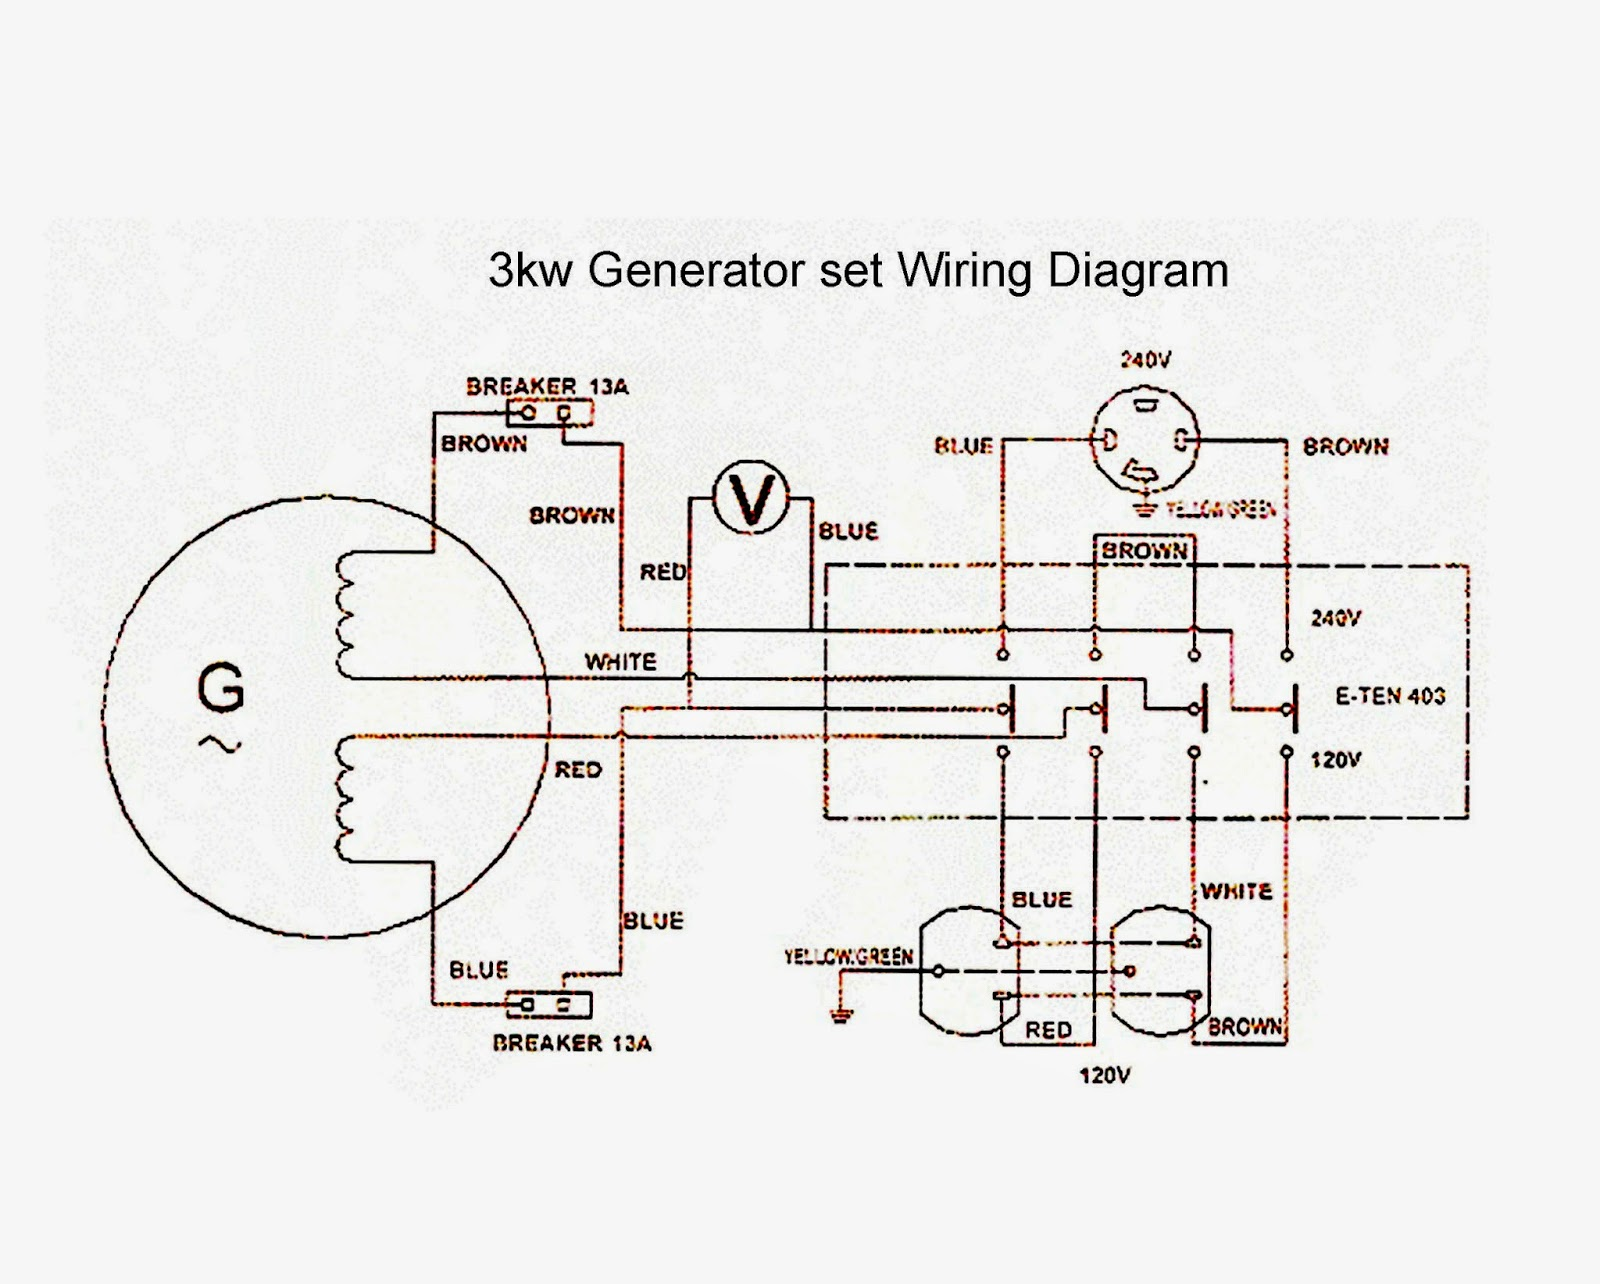 3000w+gensetswiringdiagram+1 28 [ wiring diagram of generator ] starter generator wiring starter generator wiring diagram at virtualis.co